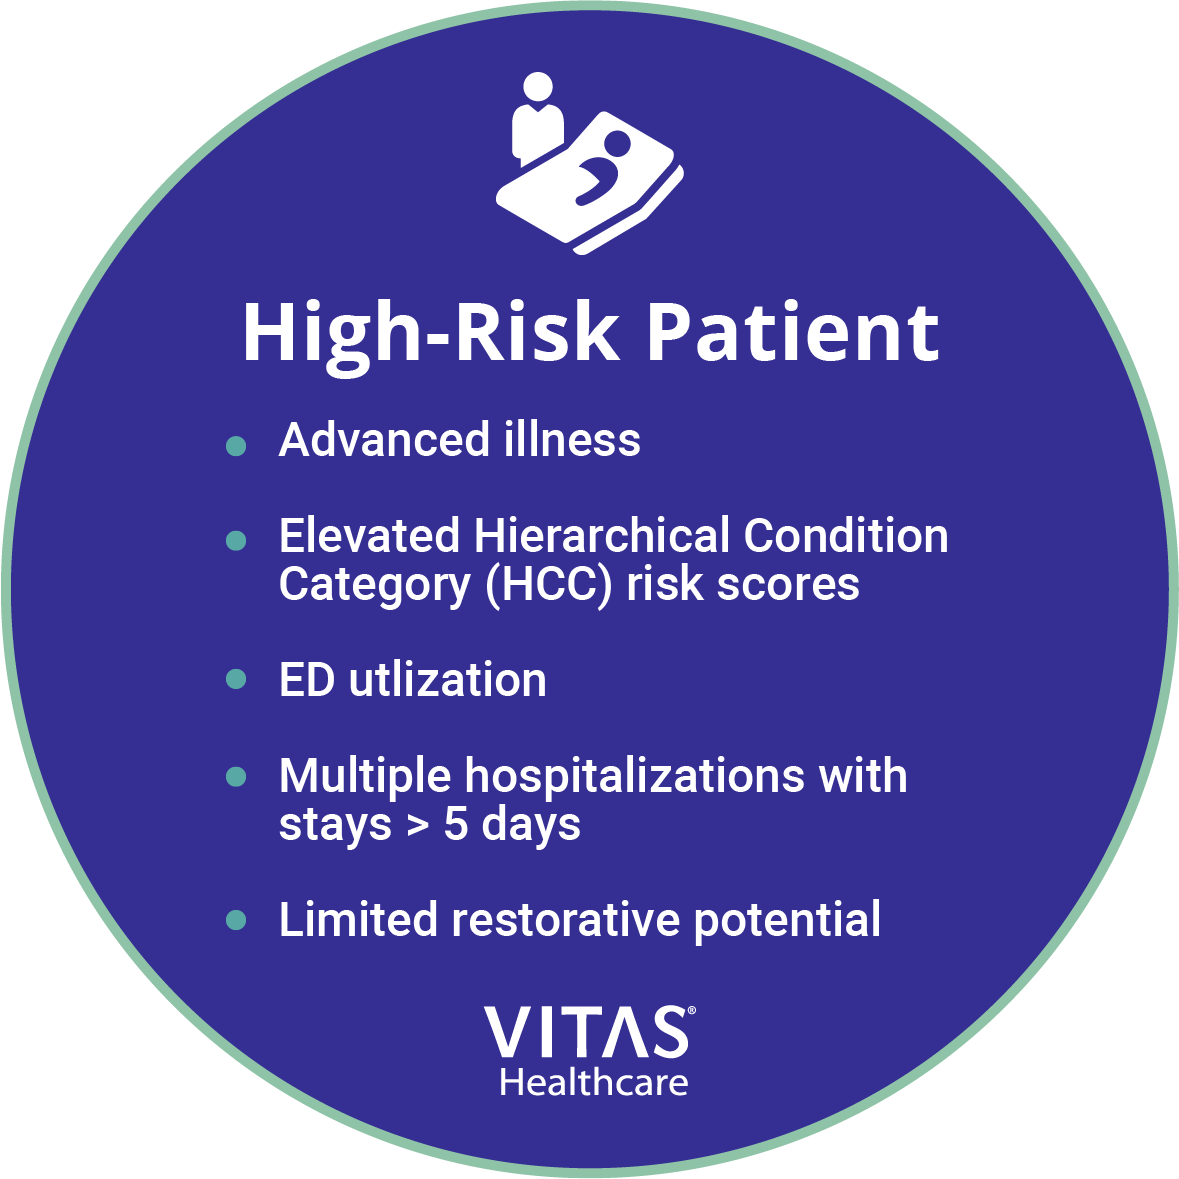 Five percent of patients require intensive care management, 15 to 35 percent need chronic disease management, and 60 to 89 percent require prevention and access.